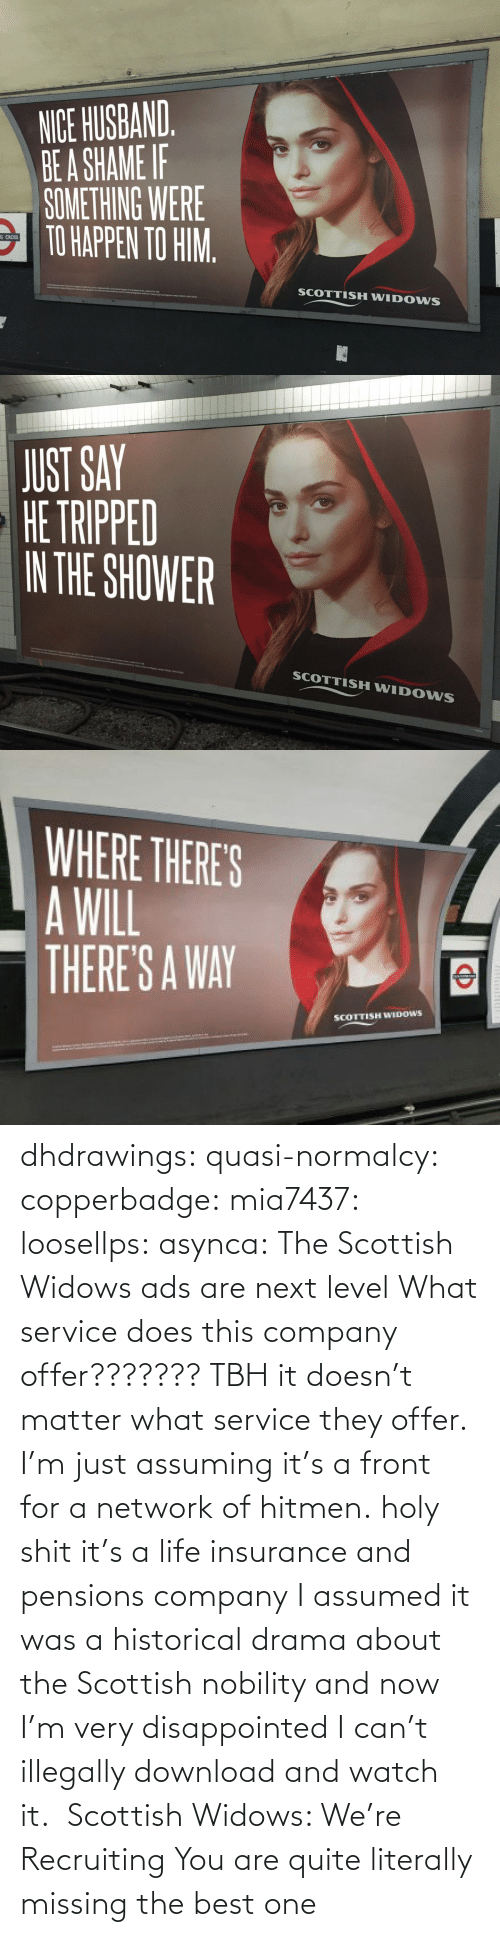 And Now: dhdrawings:  quasi-normalcy:  copperbadge:  mia7437:  loosellps:  asynca: The Scottish Widows ads are next level What service does this company offer??????? TBH it doesn't matter what service they offer. I'm just assuming it's a front for a network of hitmen.  holy shit it's a life insurance and pensions company  I assumed it was a historical drama about the Scottish nobility and now I'm very disappointed I can't illegally download and watch it.     Scottish Widows: We're Recruiting    You are quite literally missing the best one